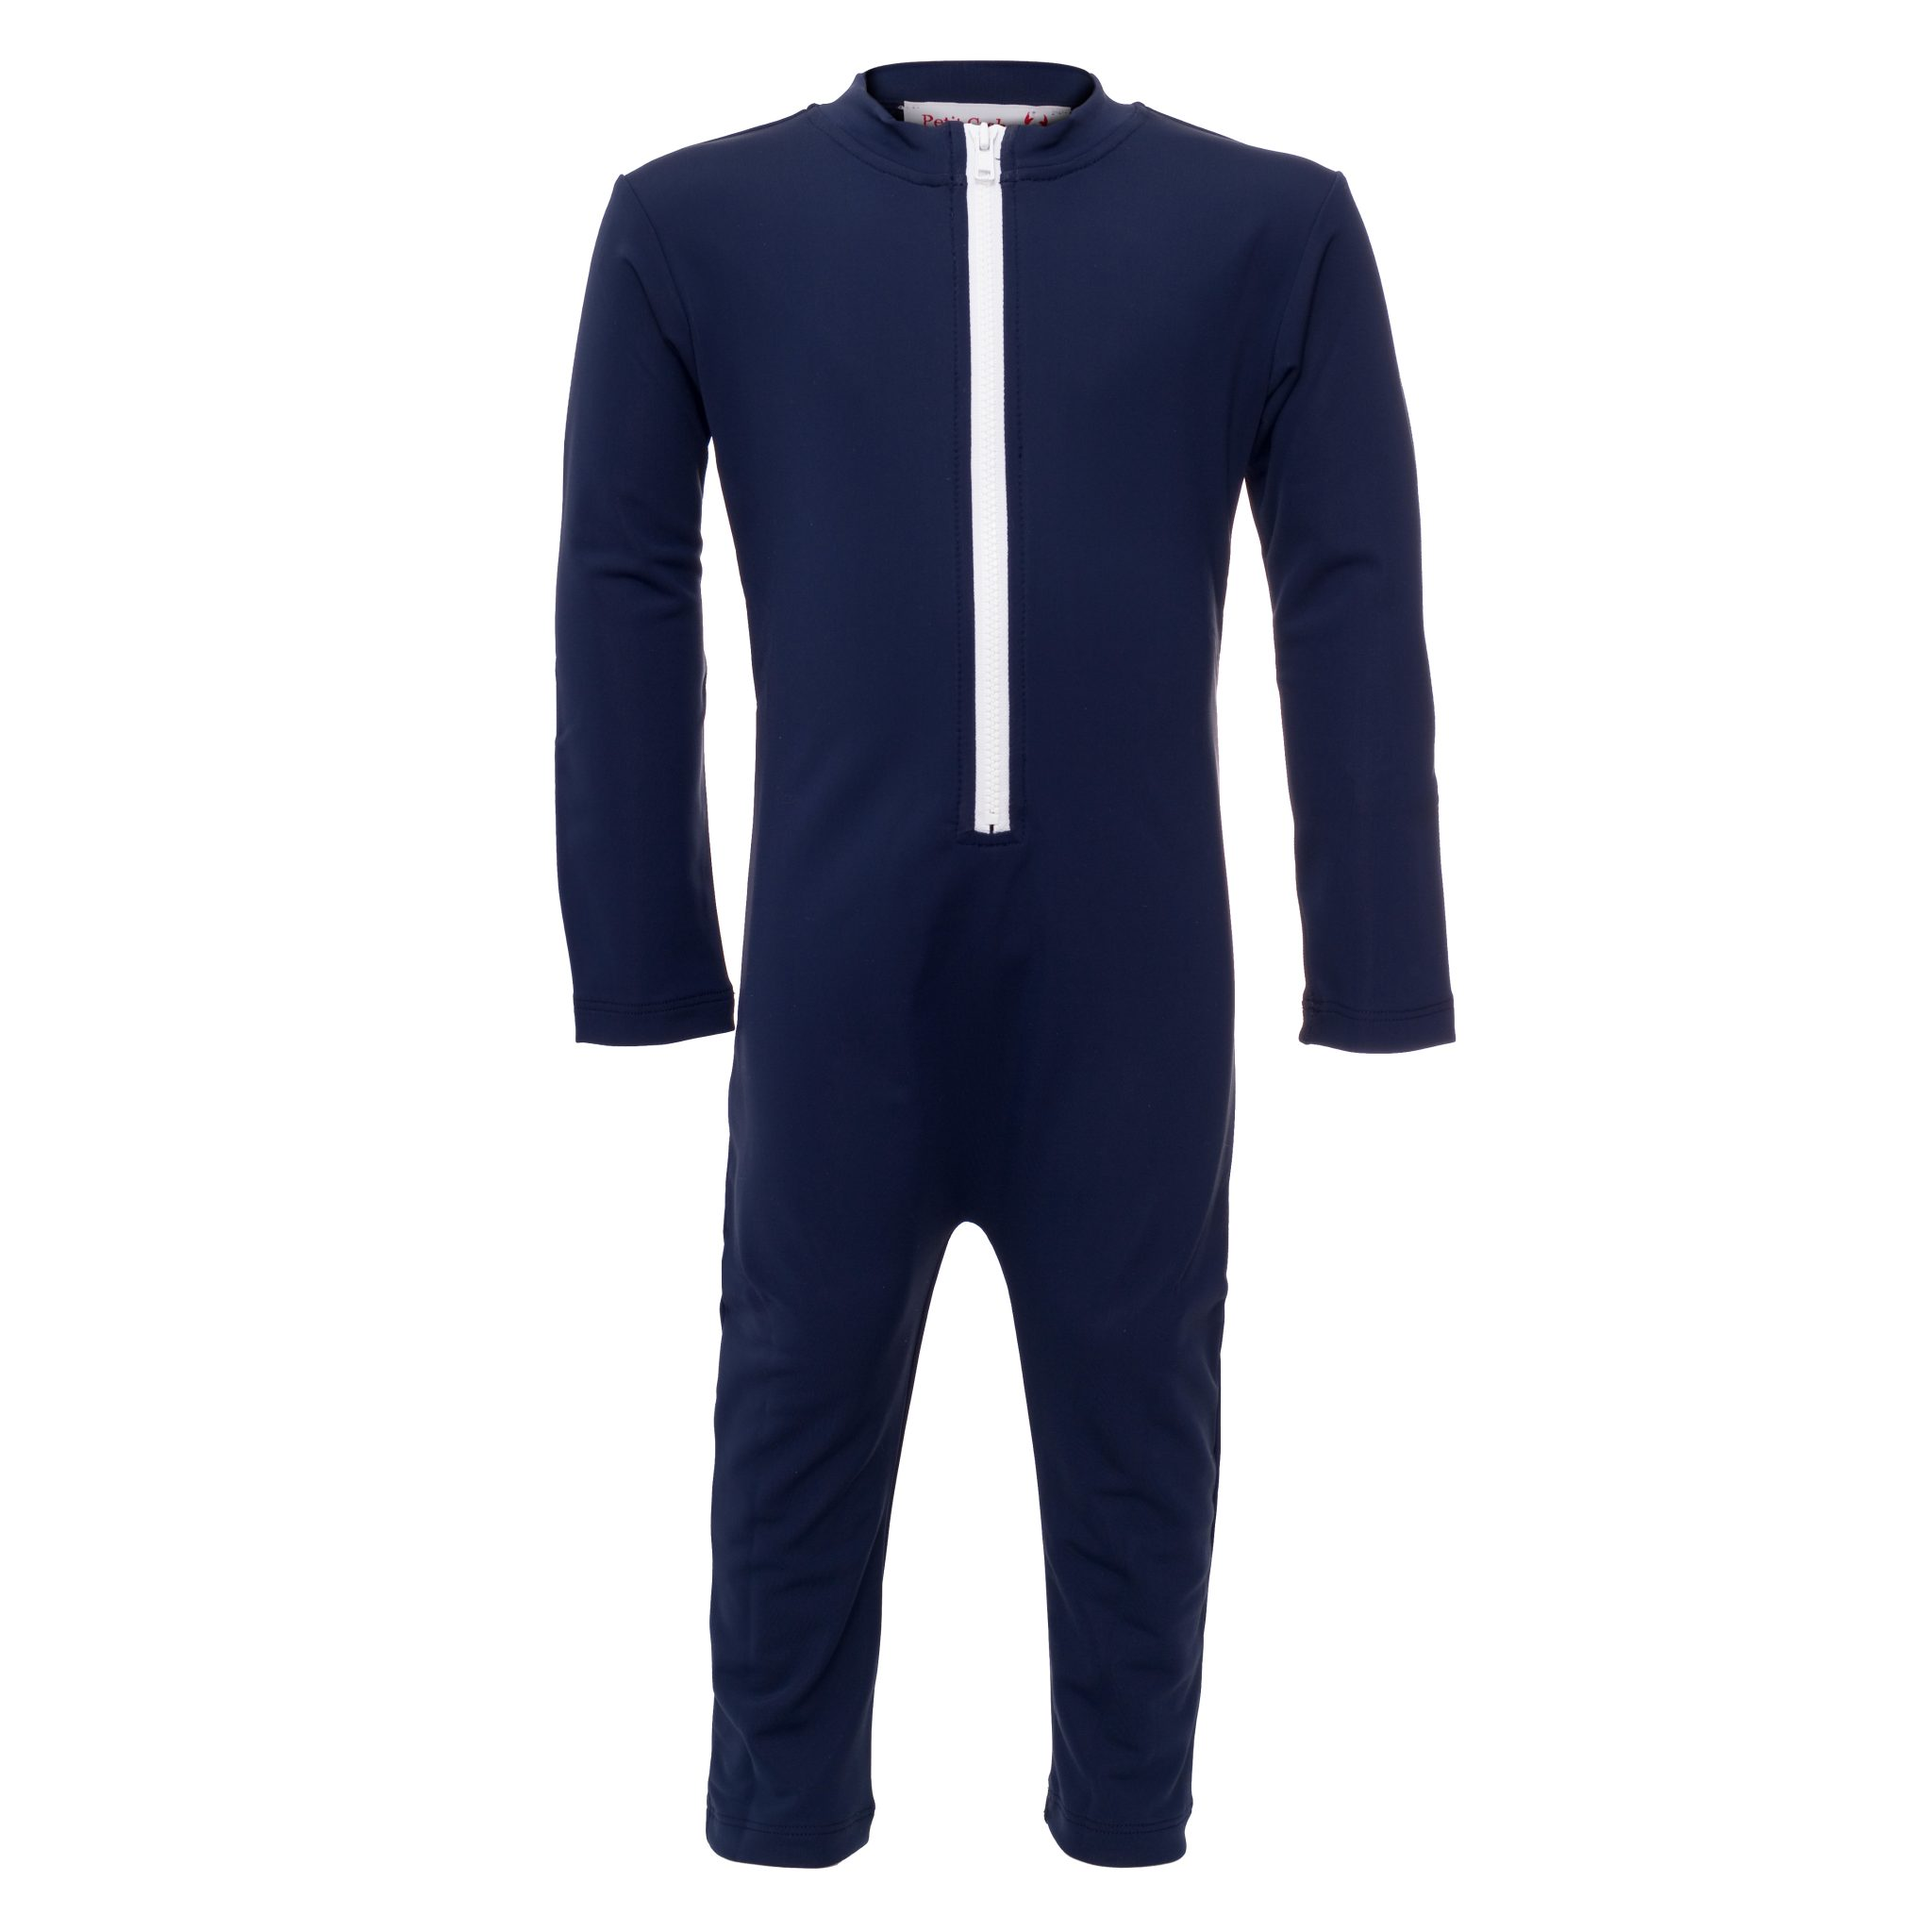 Petit Crabe dark blue Lou CHIEF sunsuit with zipper and long sleeves. UV sun protective swimwear for kids.